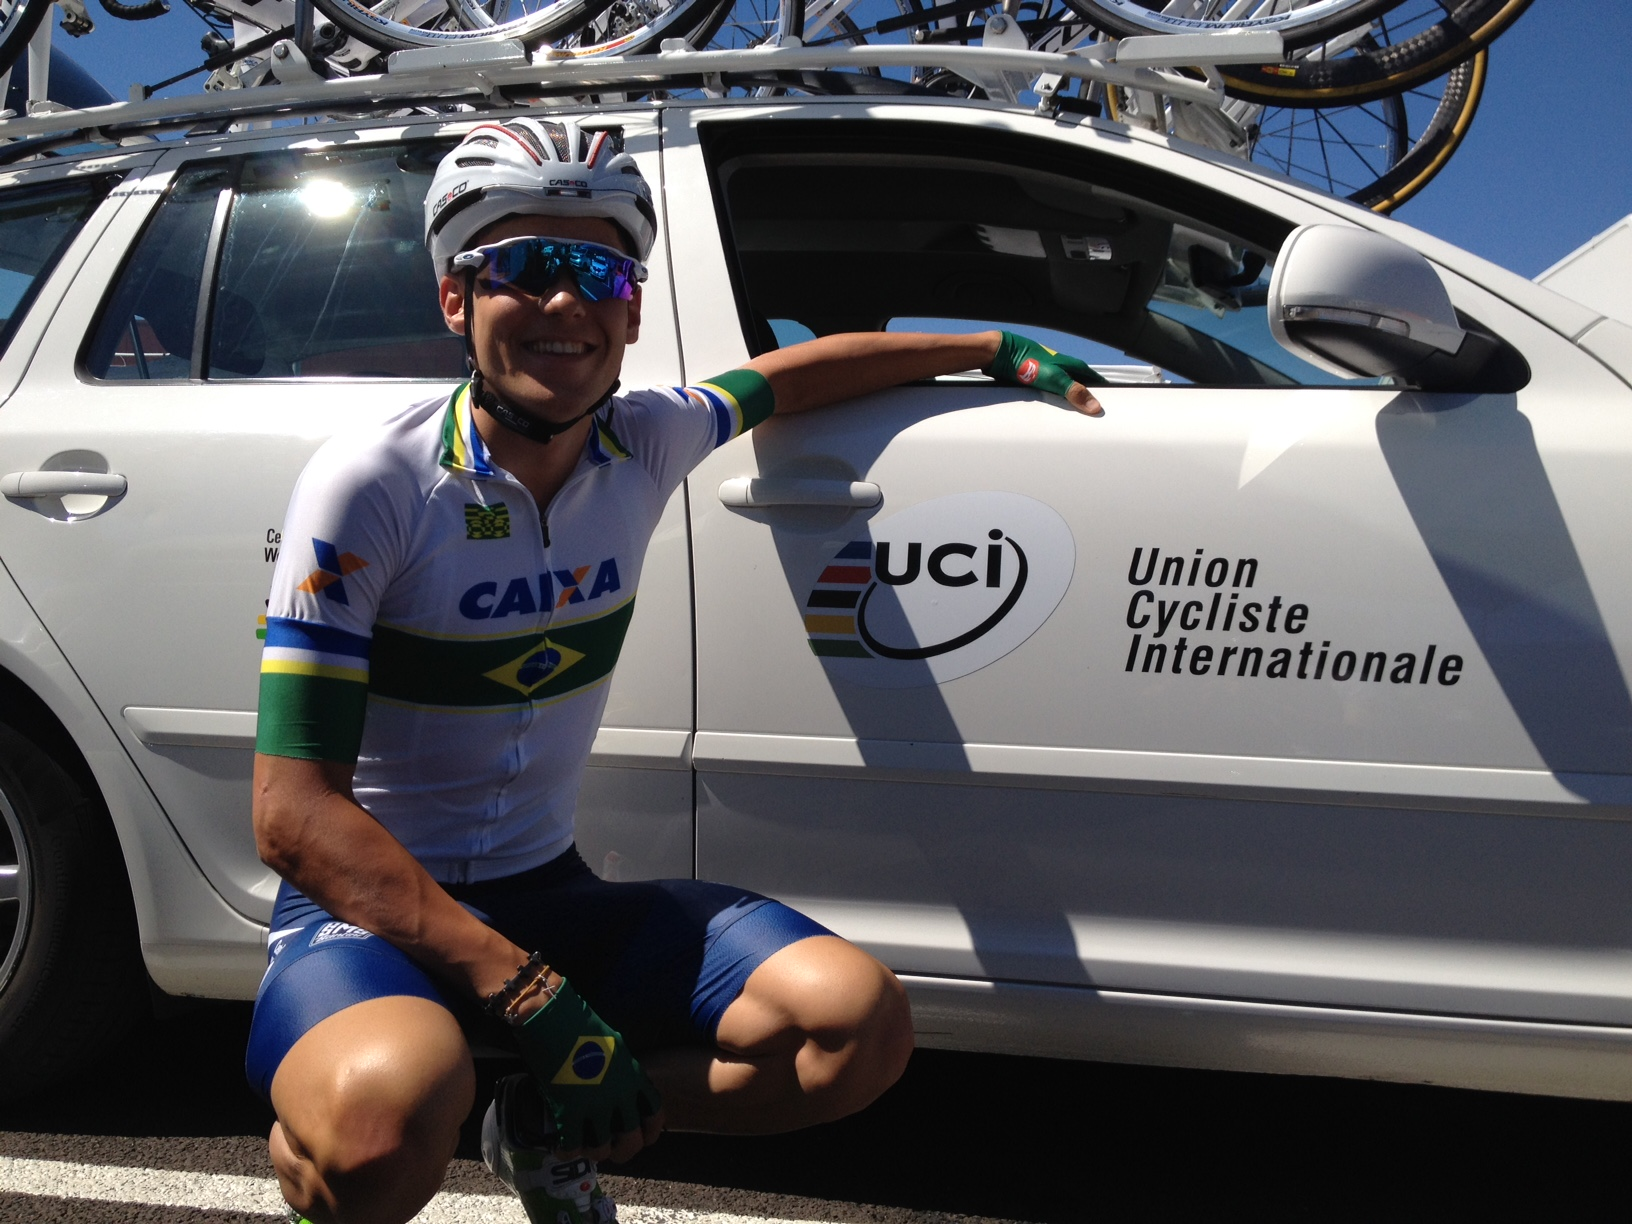 Godoy wants to add some Brazilian flavour to pro peloton